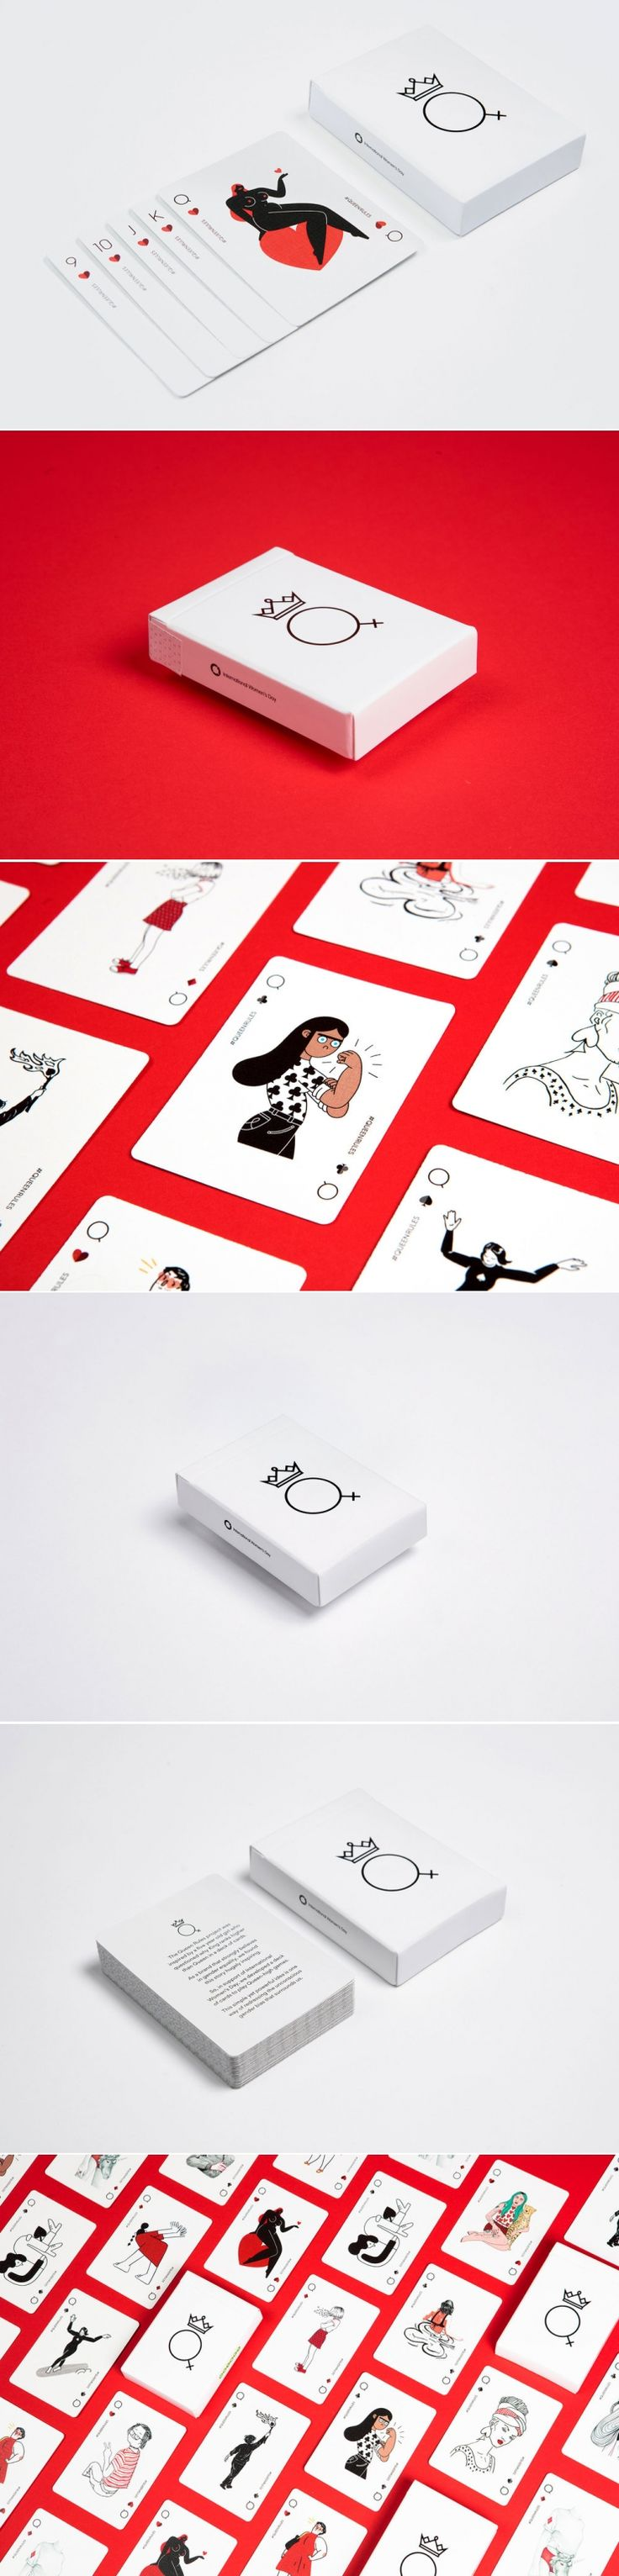 In This Card Game The Queens Rule The House — The Dieline | Packaging & Branding Design & Innovation News